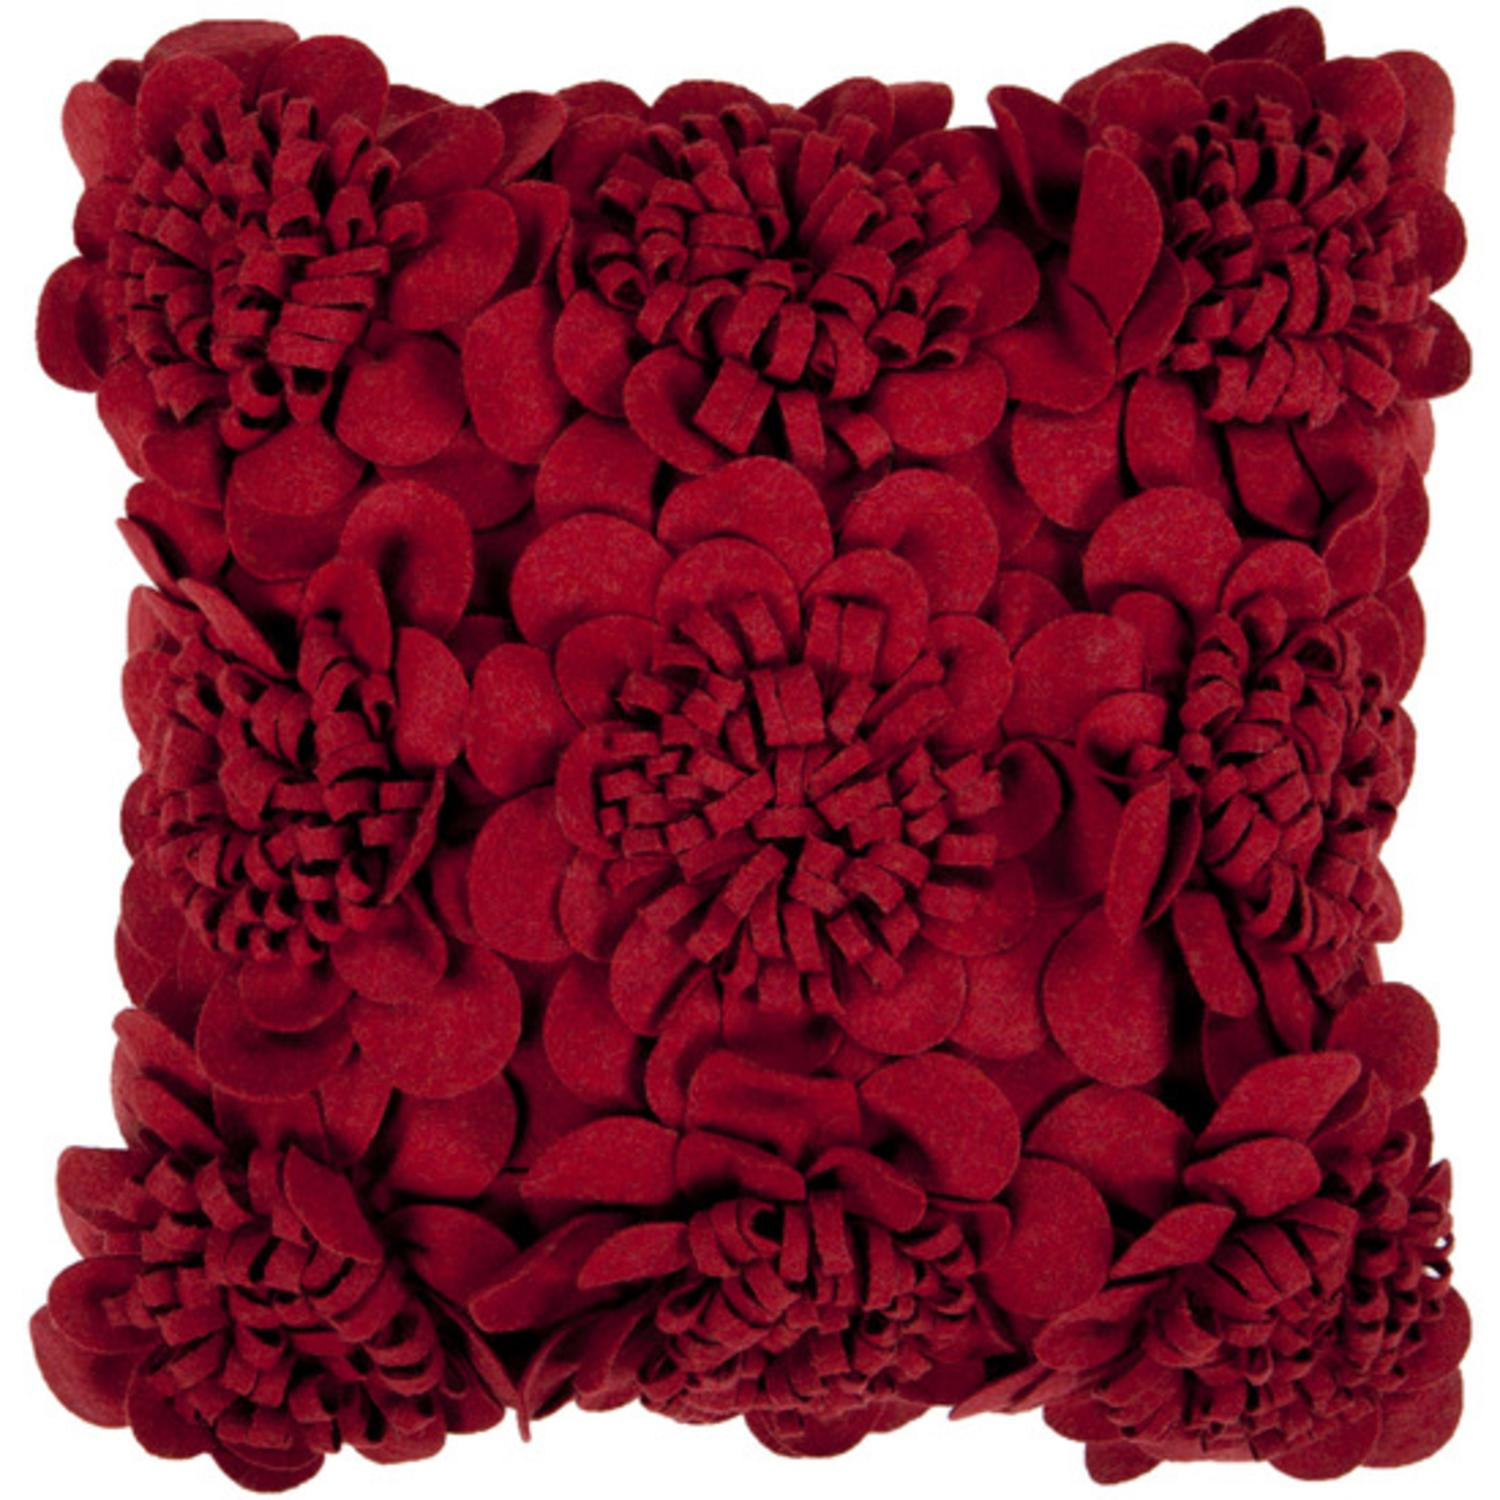 "22"" Dark Maroon Red Dimensional Applique Mums Decorative Down Throw Pillow"